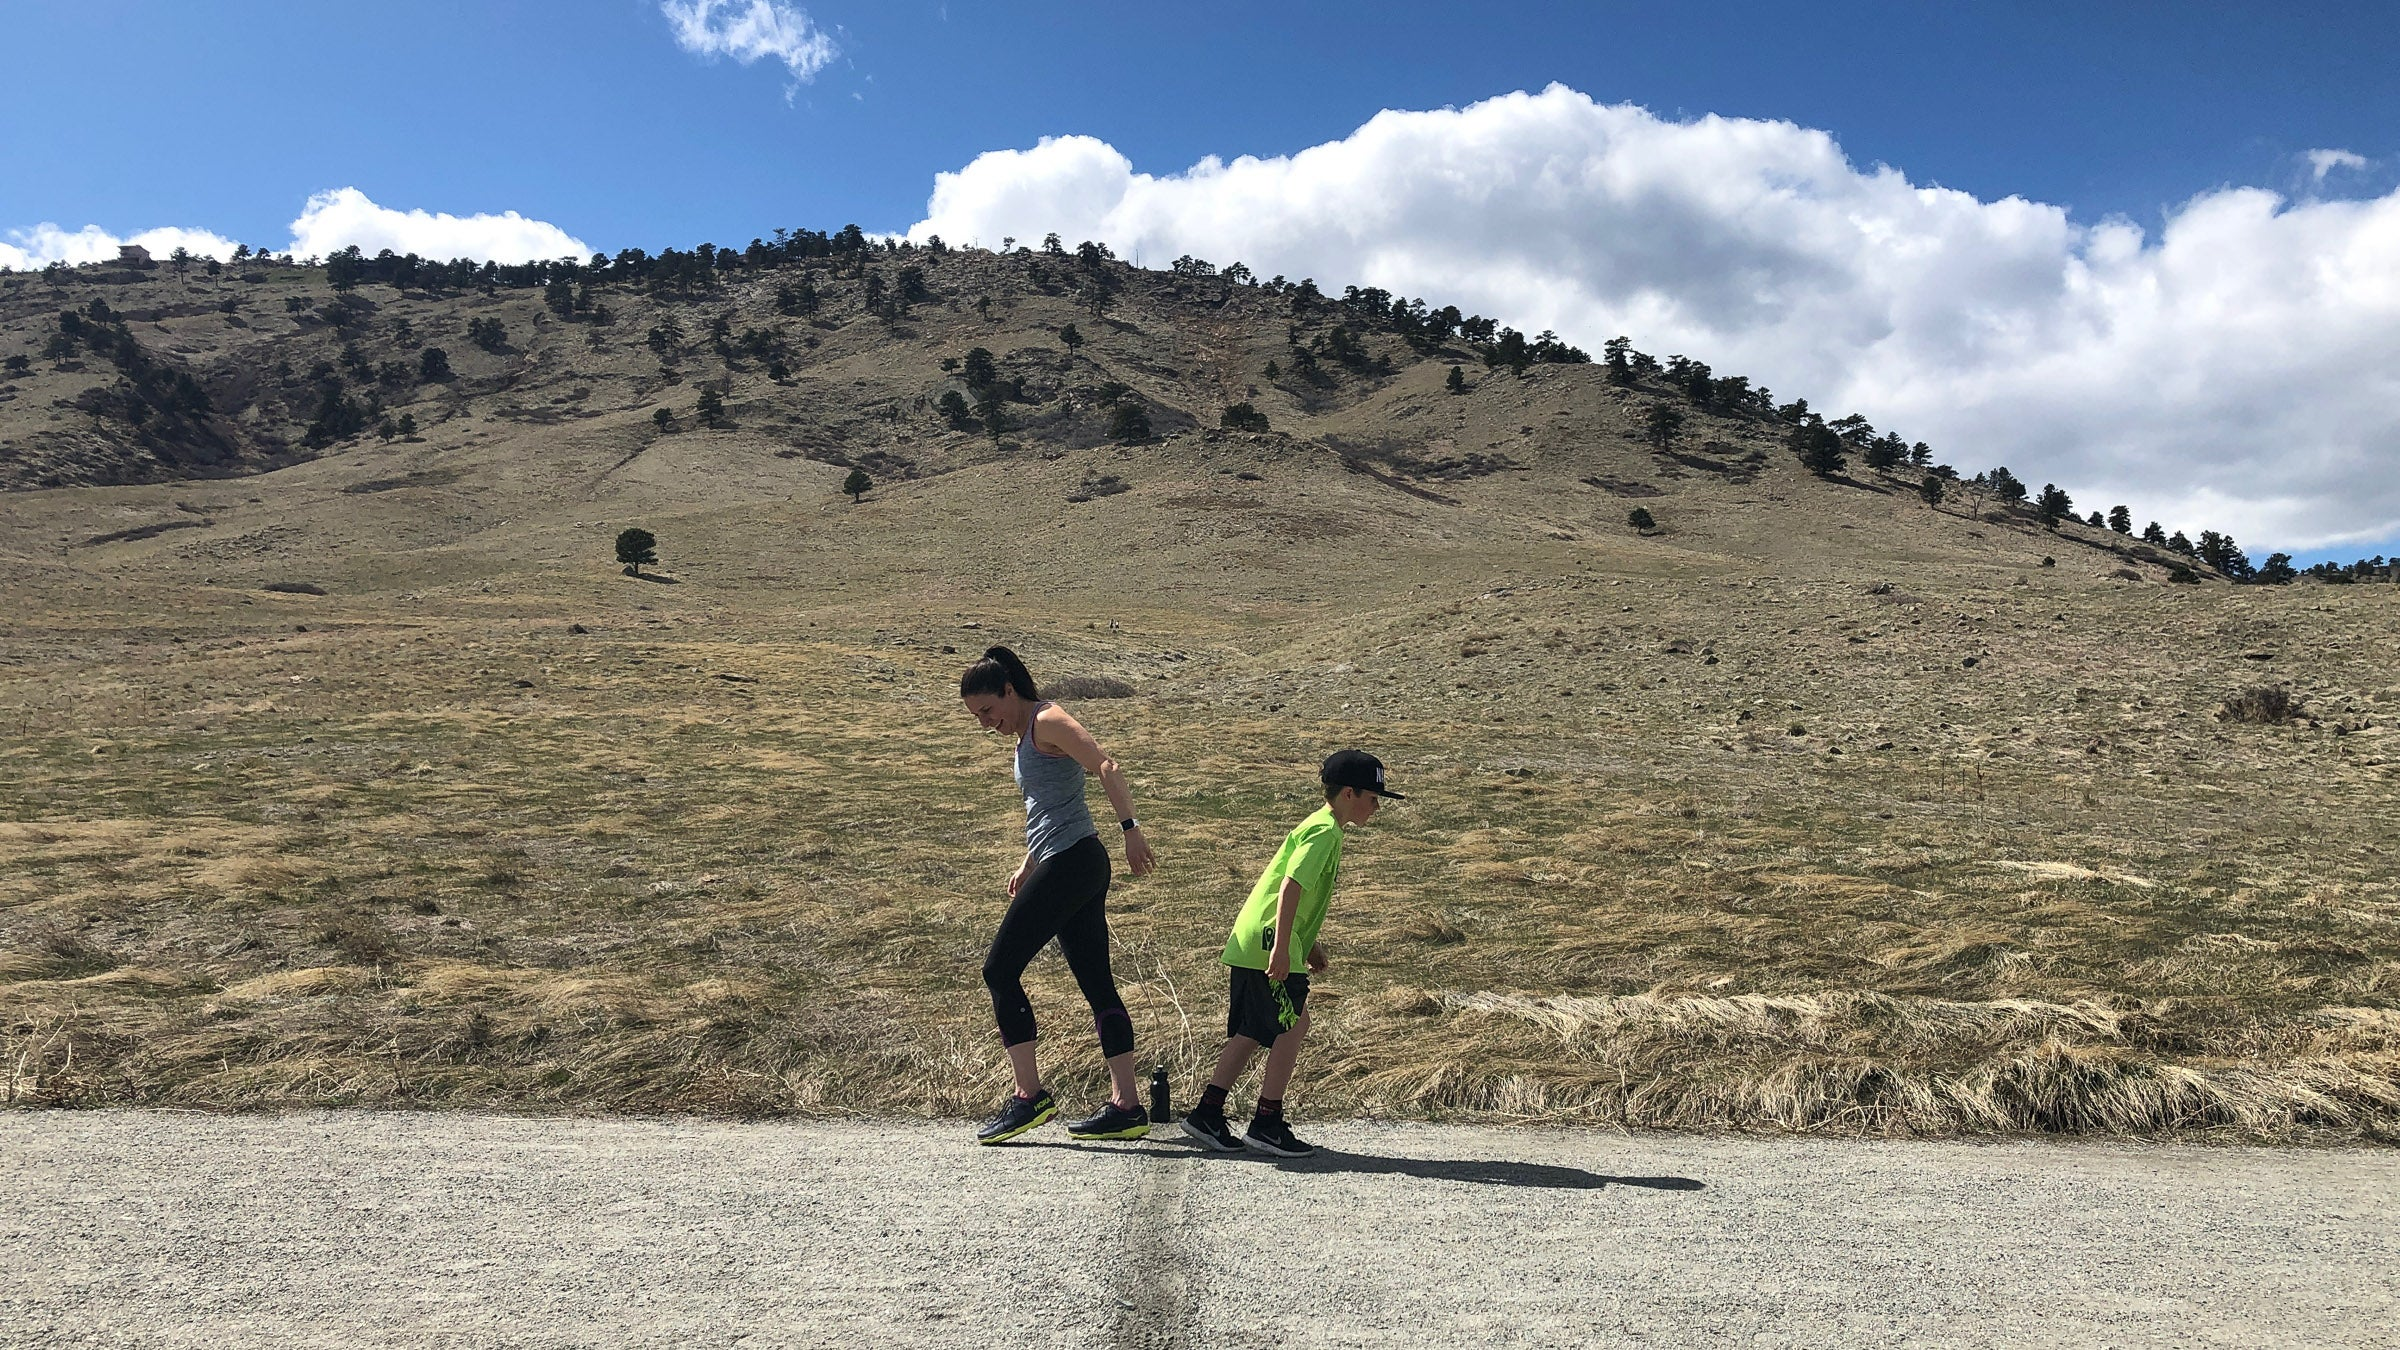 Mother and son race on trail